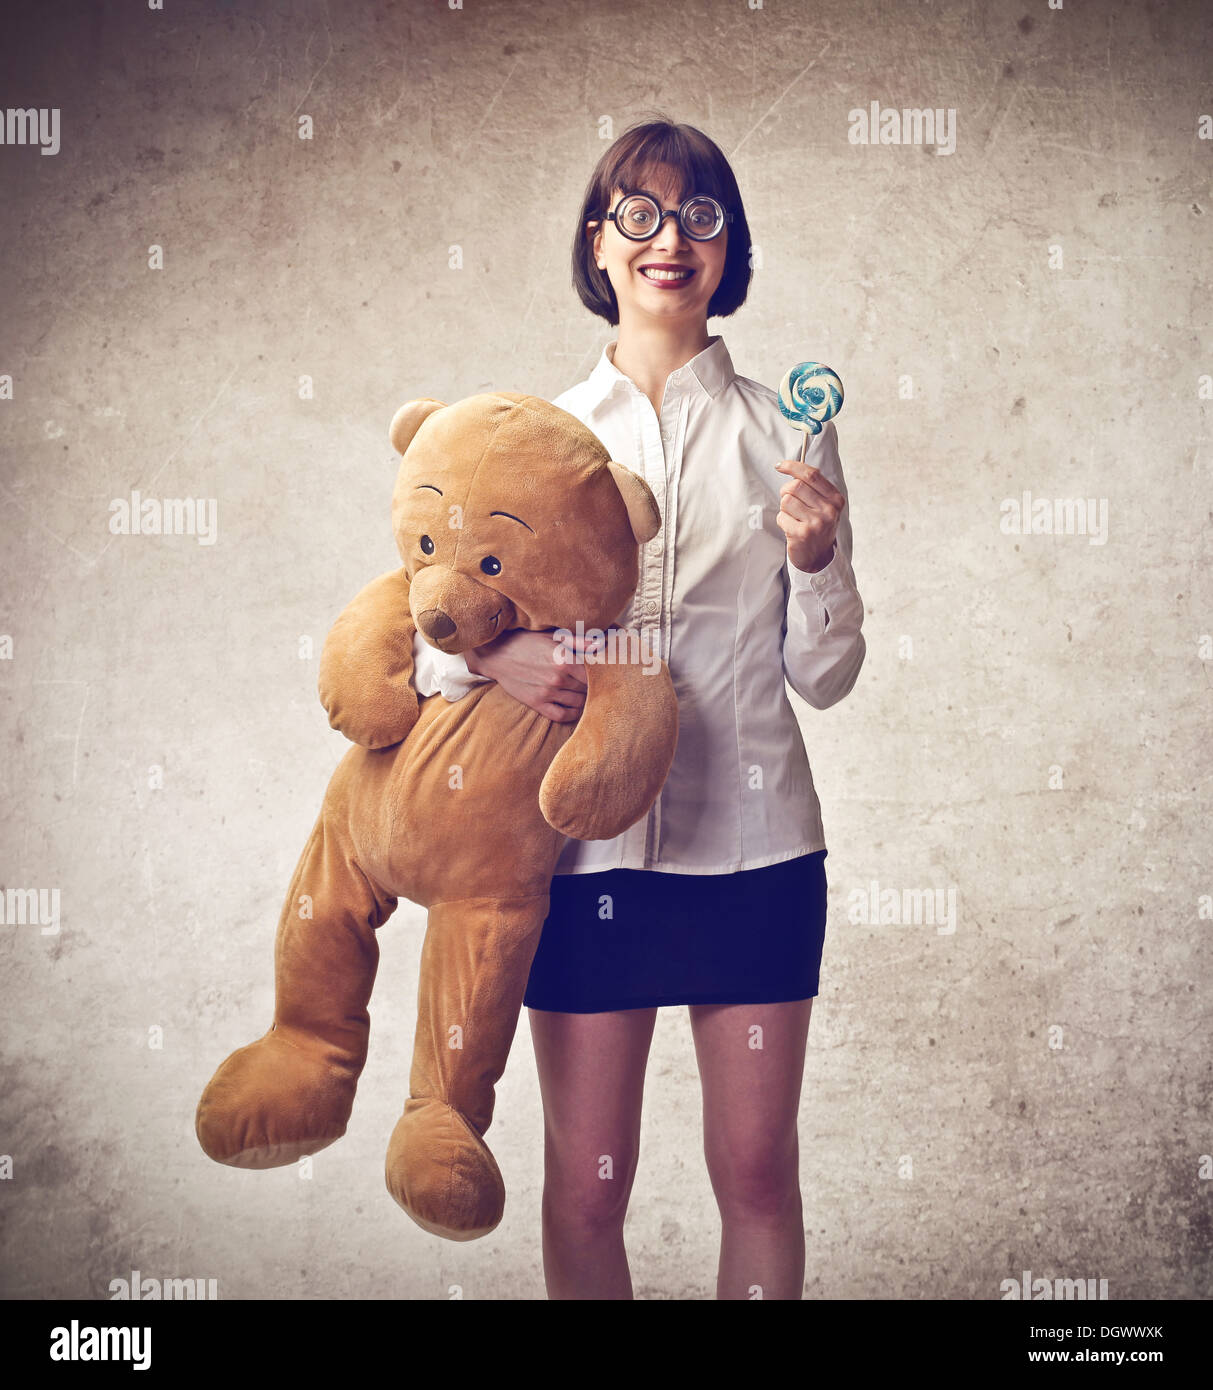 Nerd girl holding a teddy and a lollipop - Stock Image